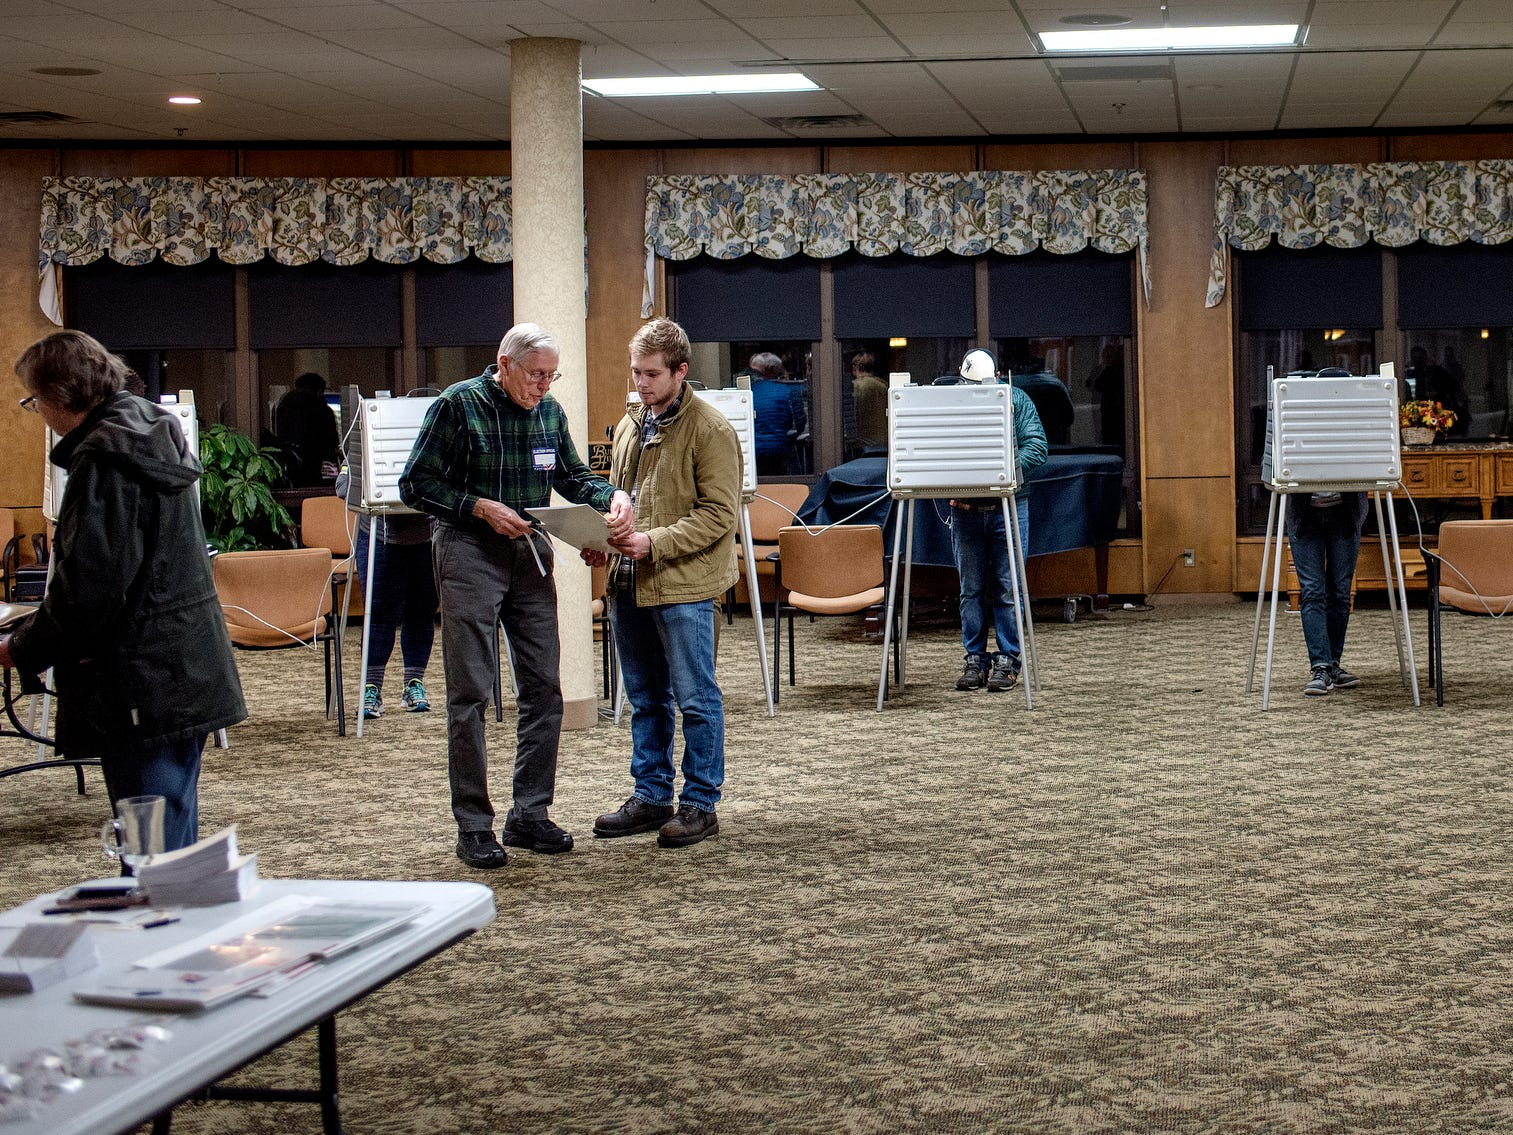 People vote on Tuesday, Nov. 6, 2018, at the polling place inside Burcham Hills retirement community in East Lansing.